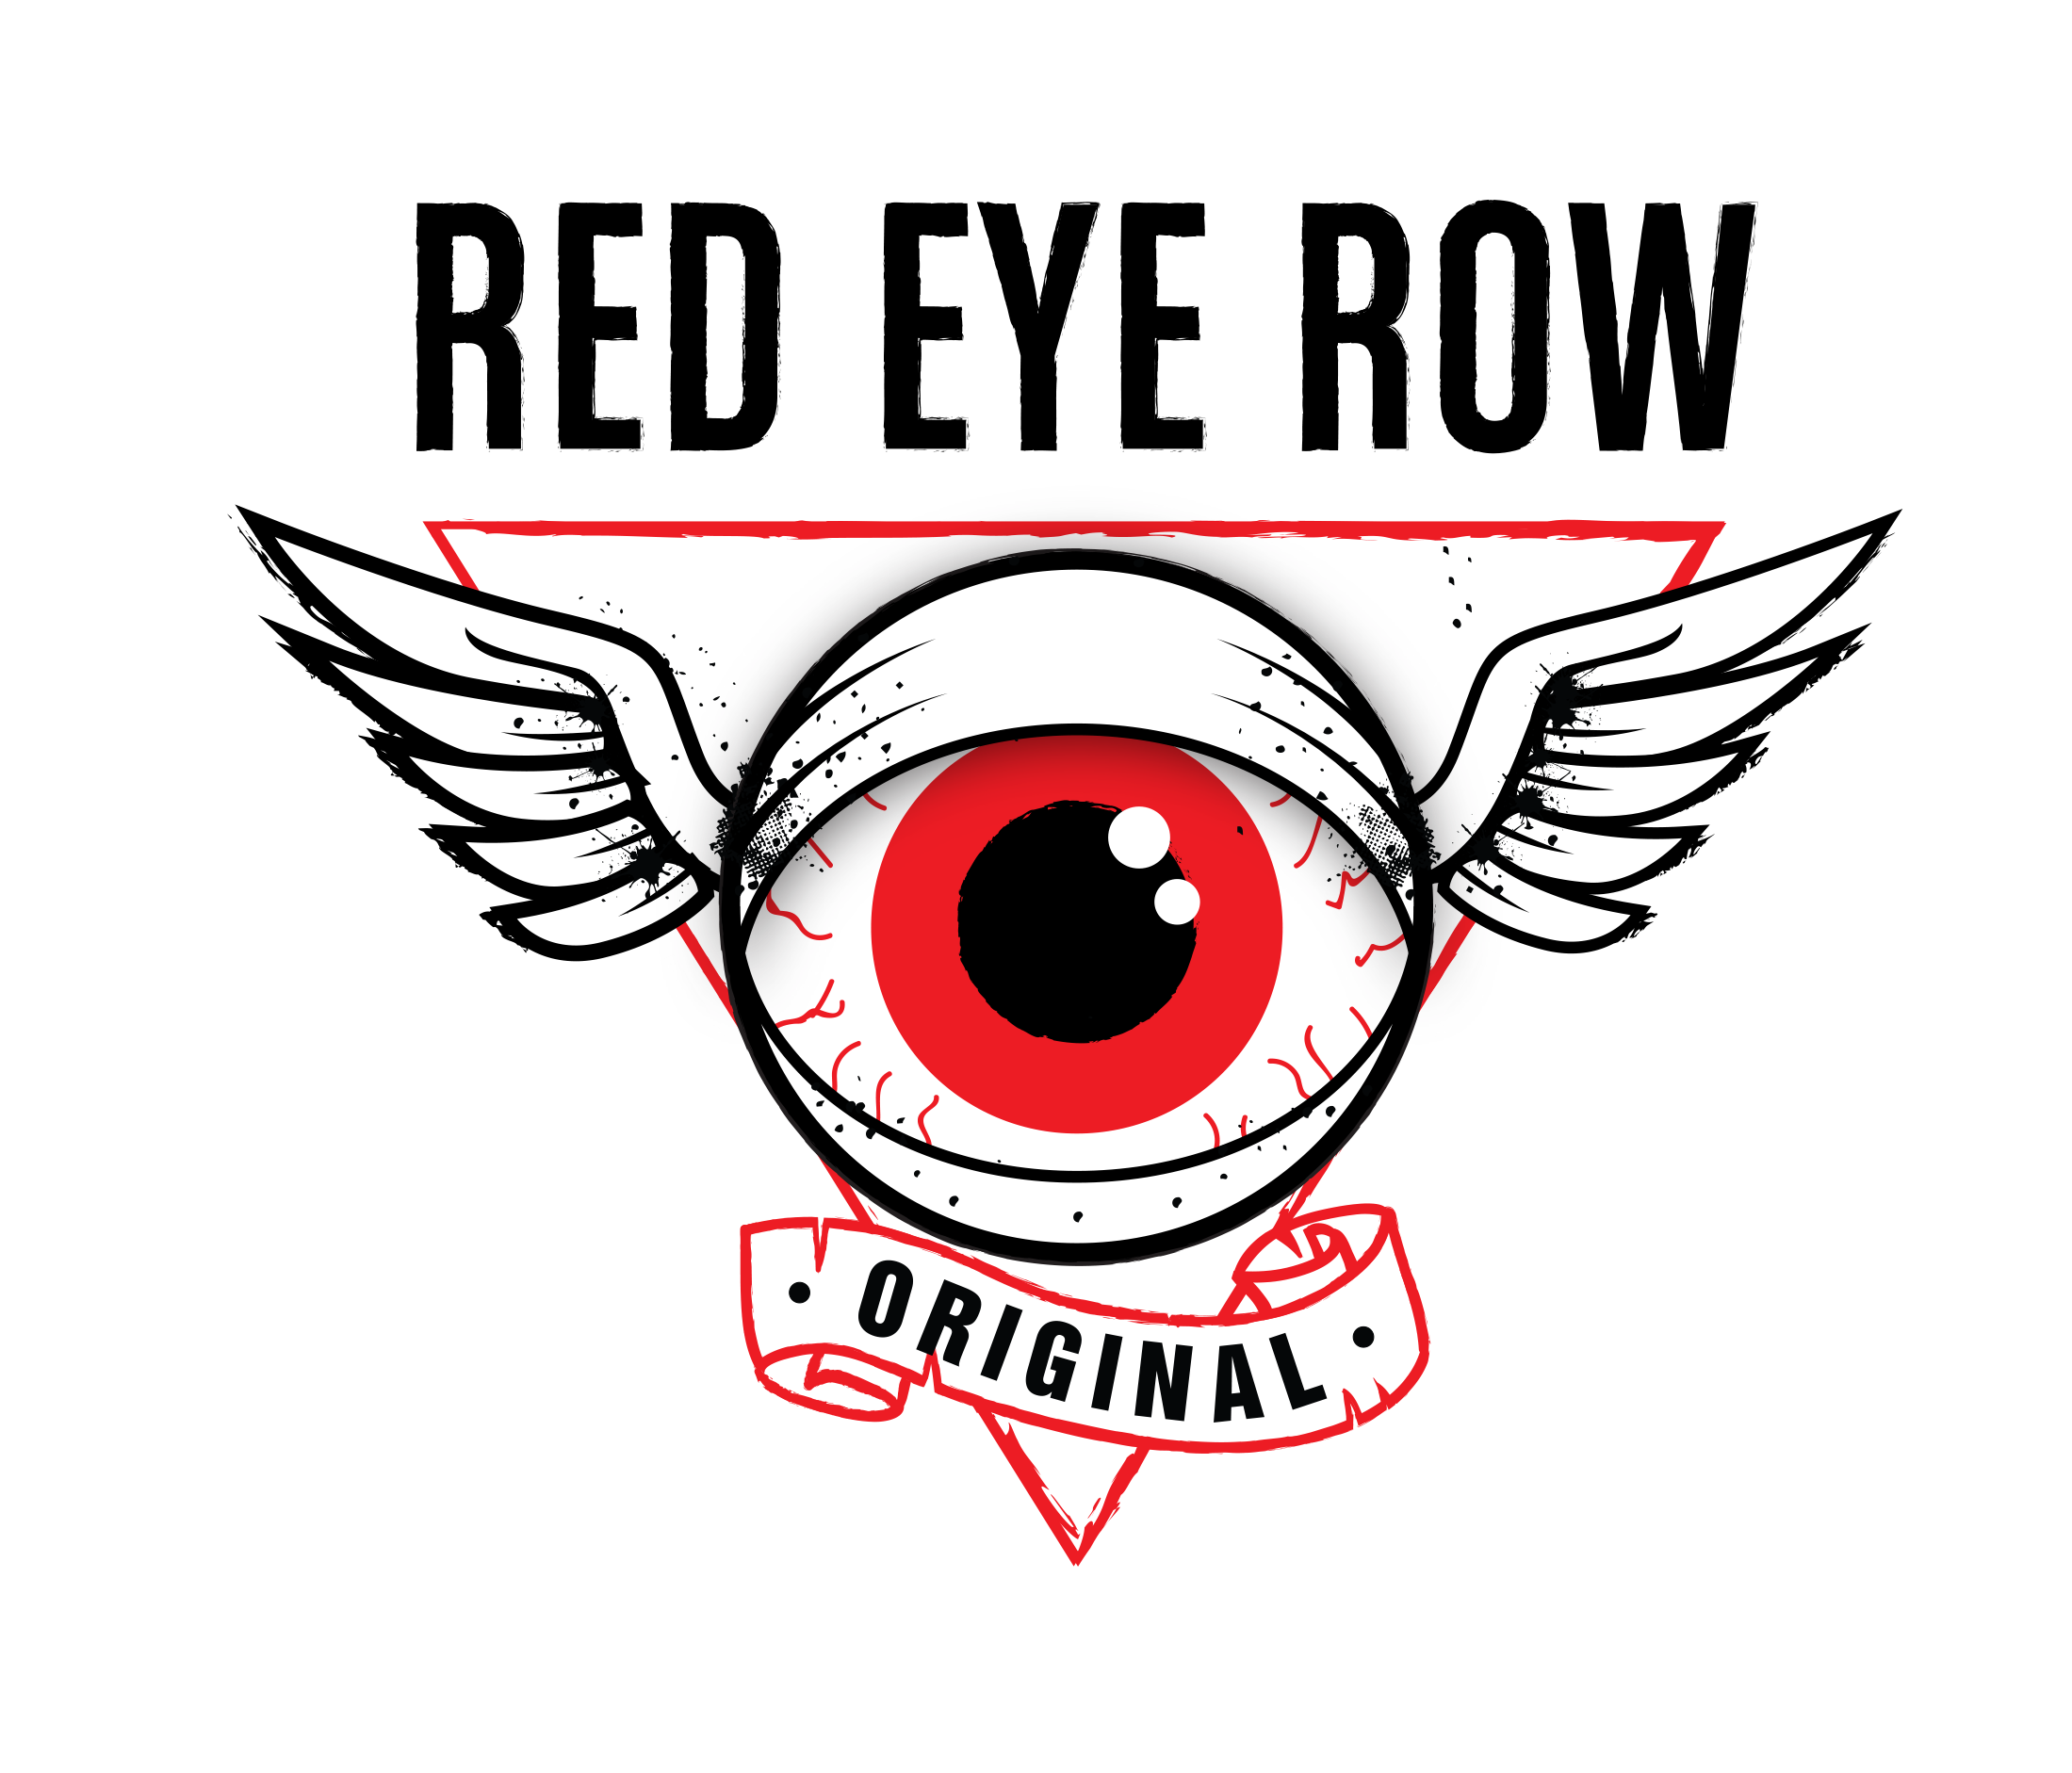 Red Eye Row